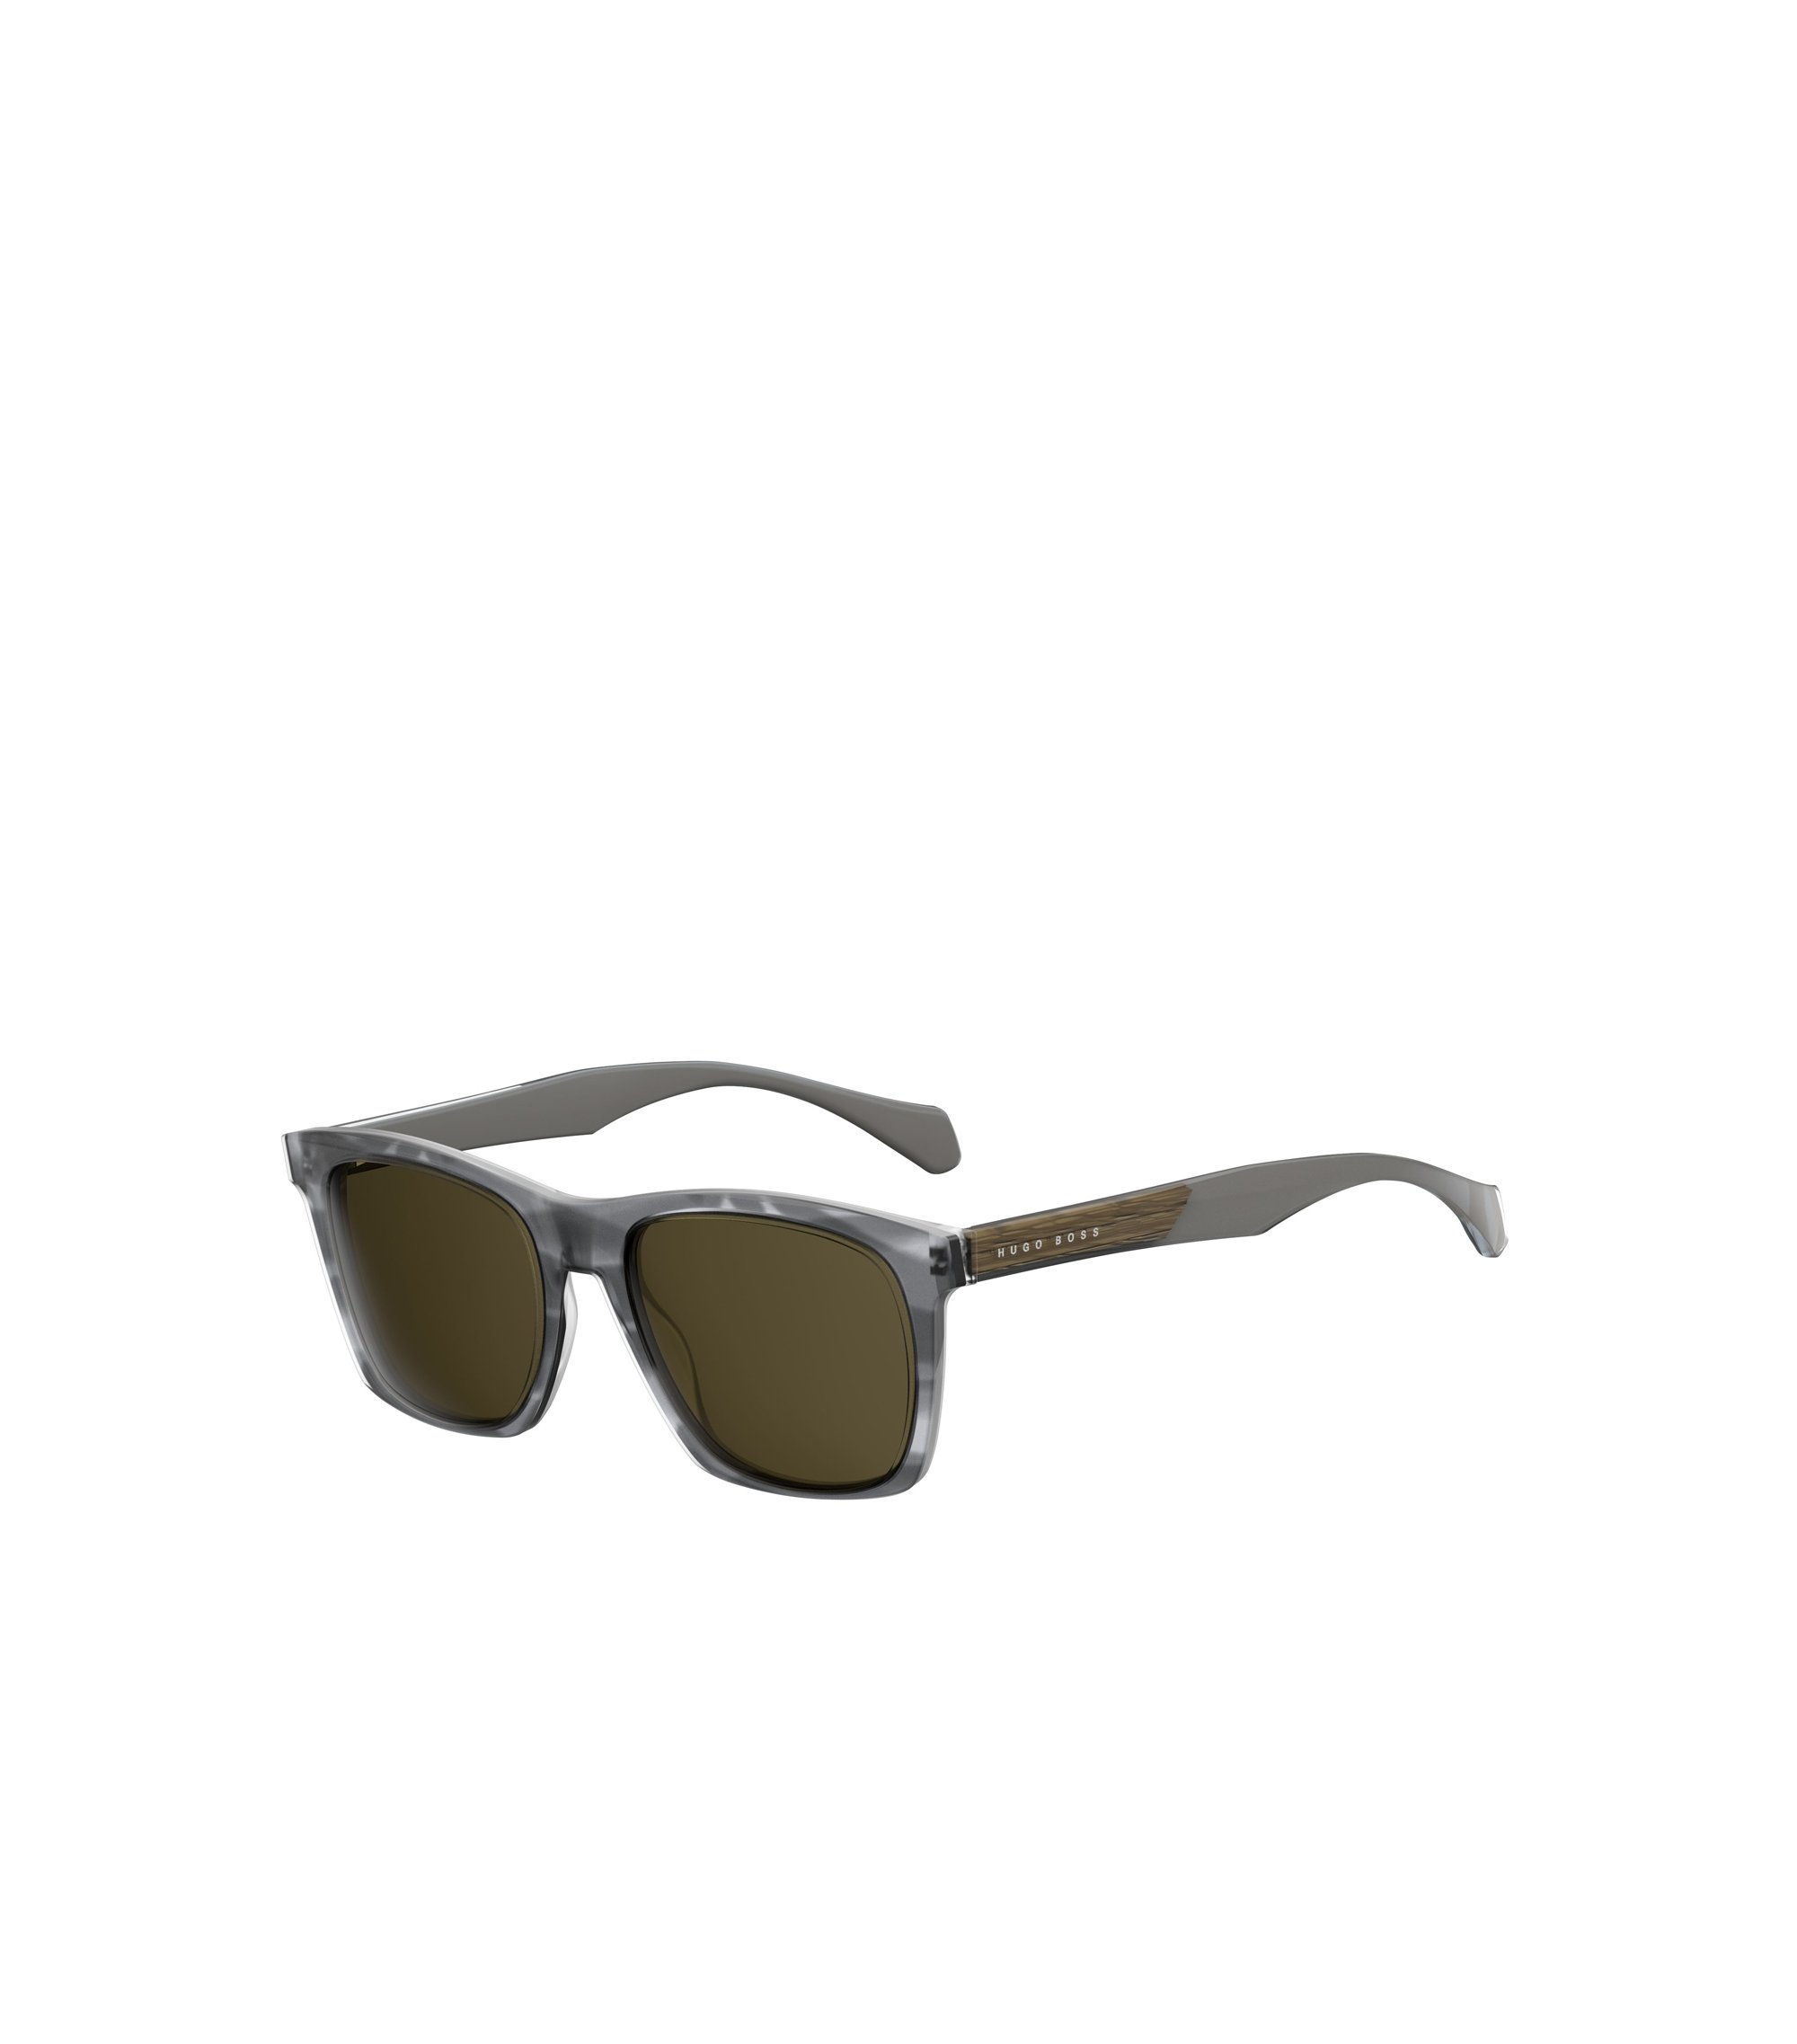 Grey Acetate Rectangular Sunglasses | BOSS 0911/S, Assorted-Pre-Pack